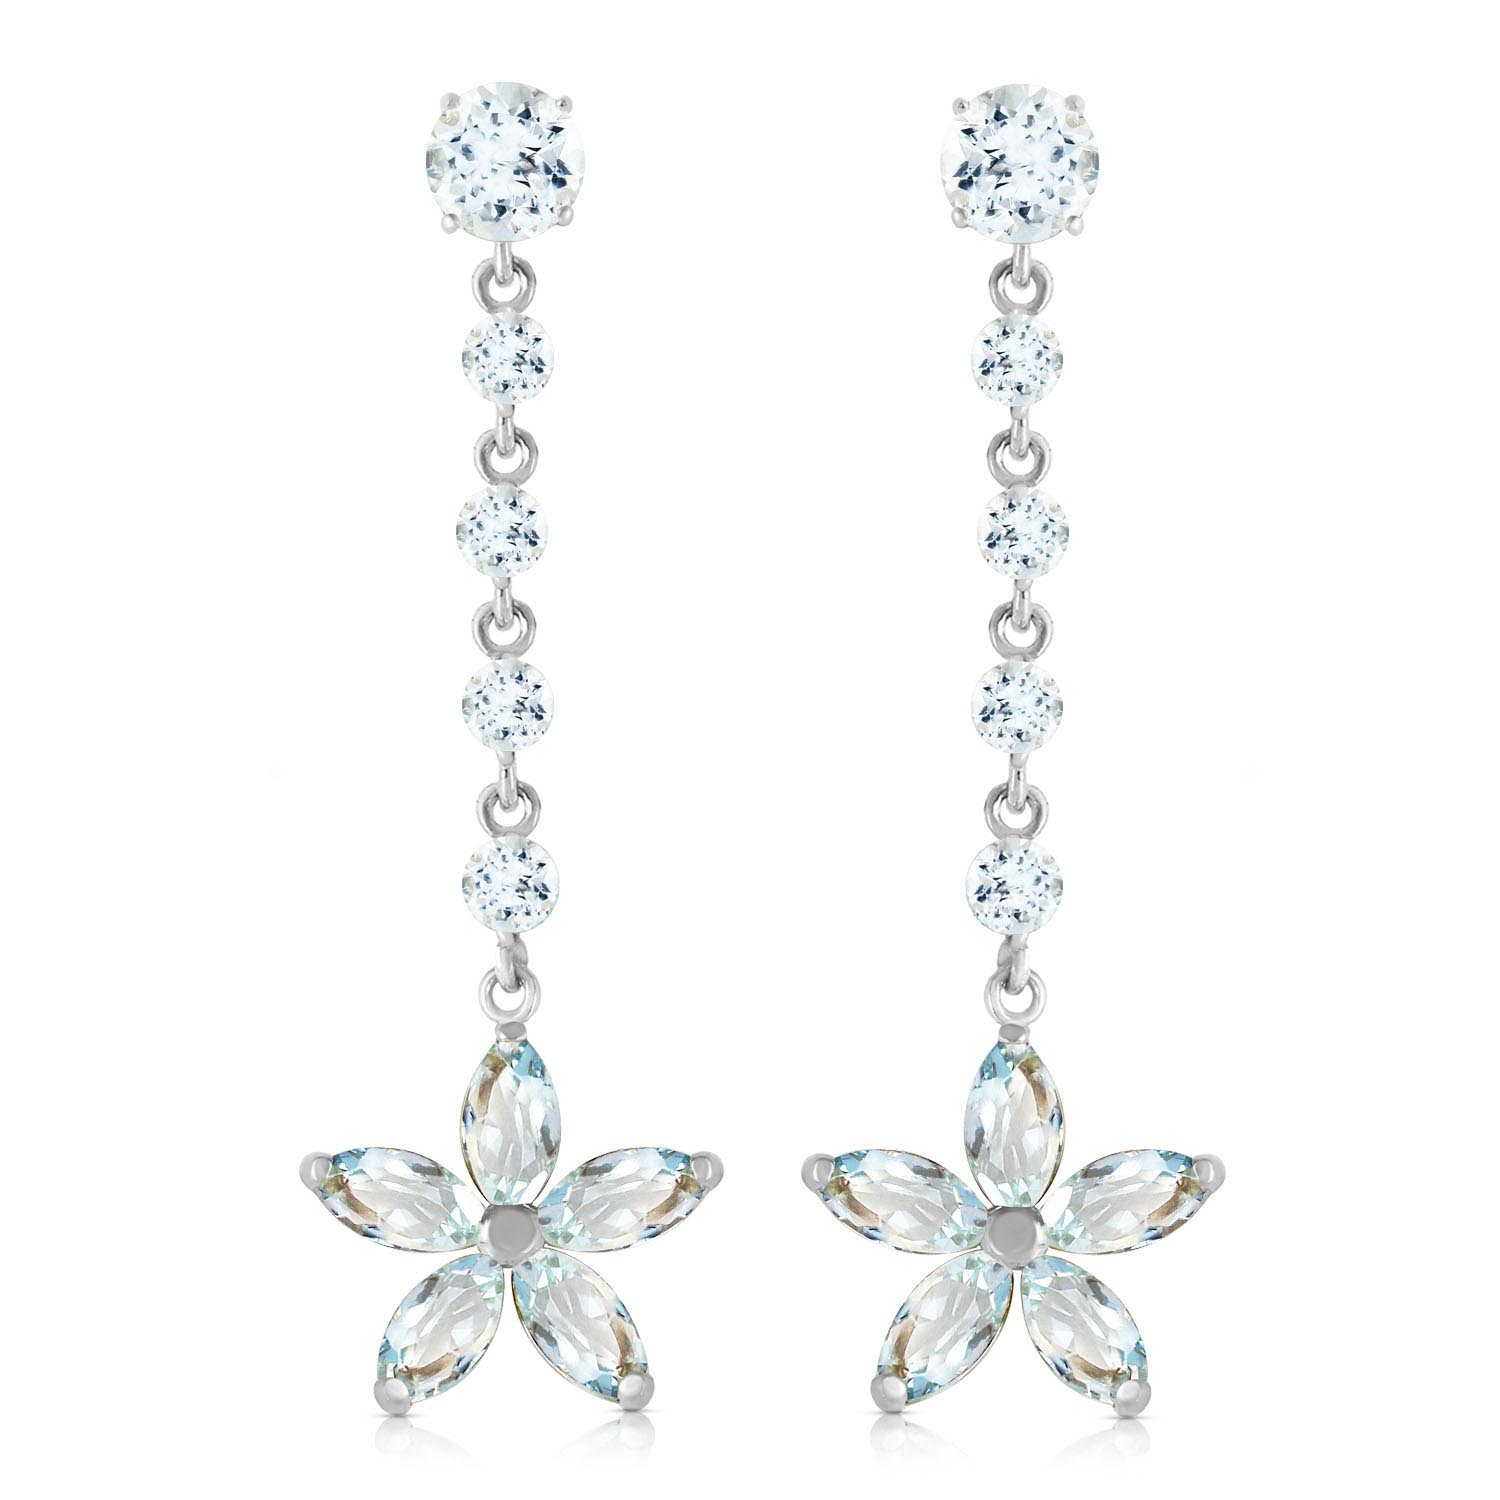 Aquamarine Daisy Chain Drop Earrings 4.8ctw in 9ct White Gold